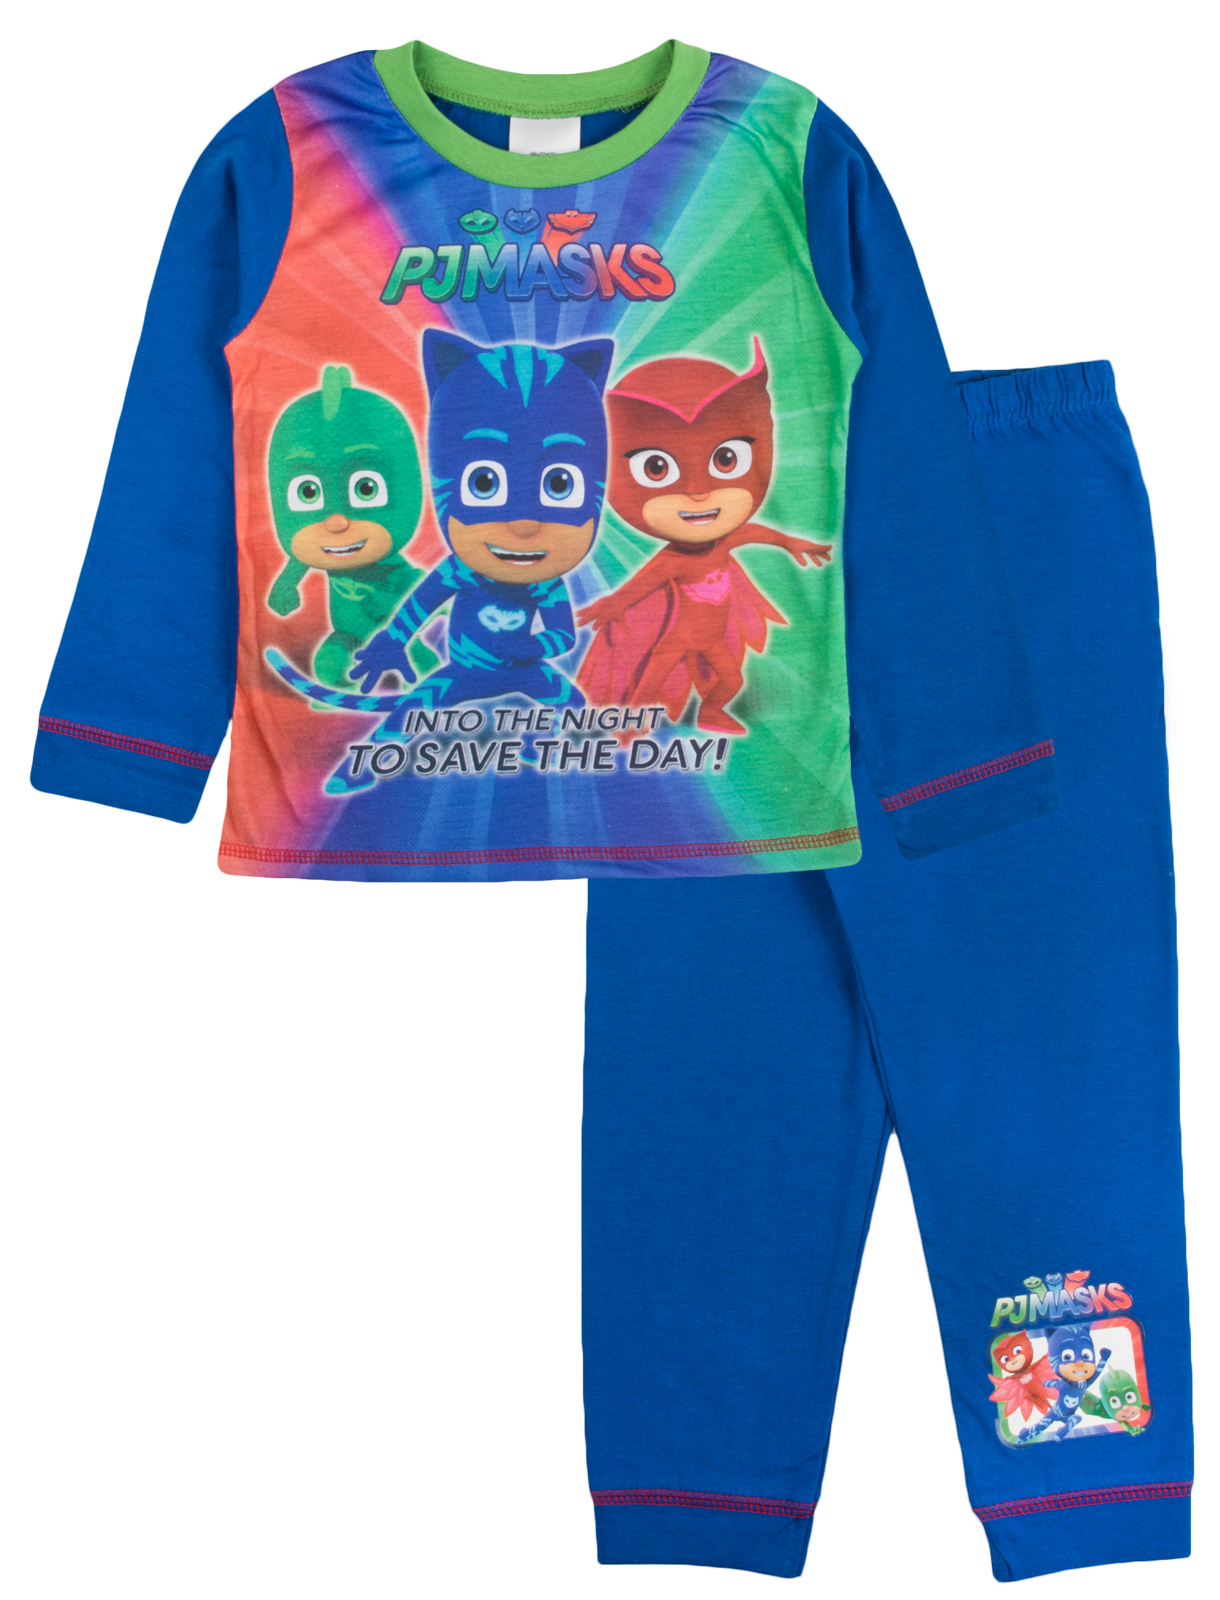 Attractive Boys Kids PJ Mask Pyjamas Into The Night